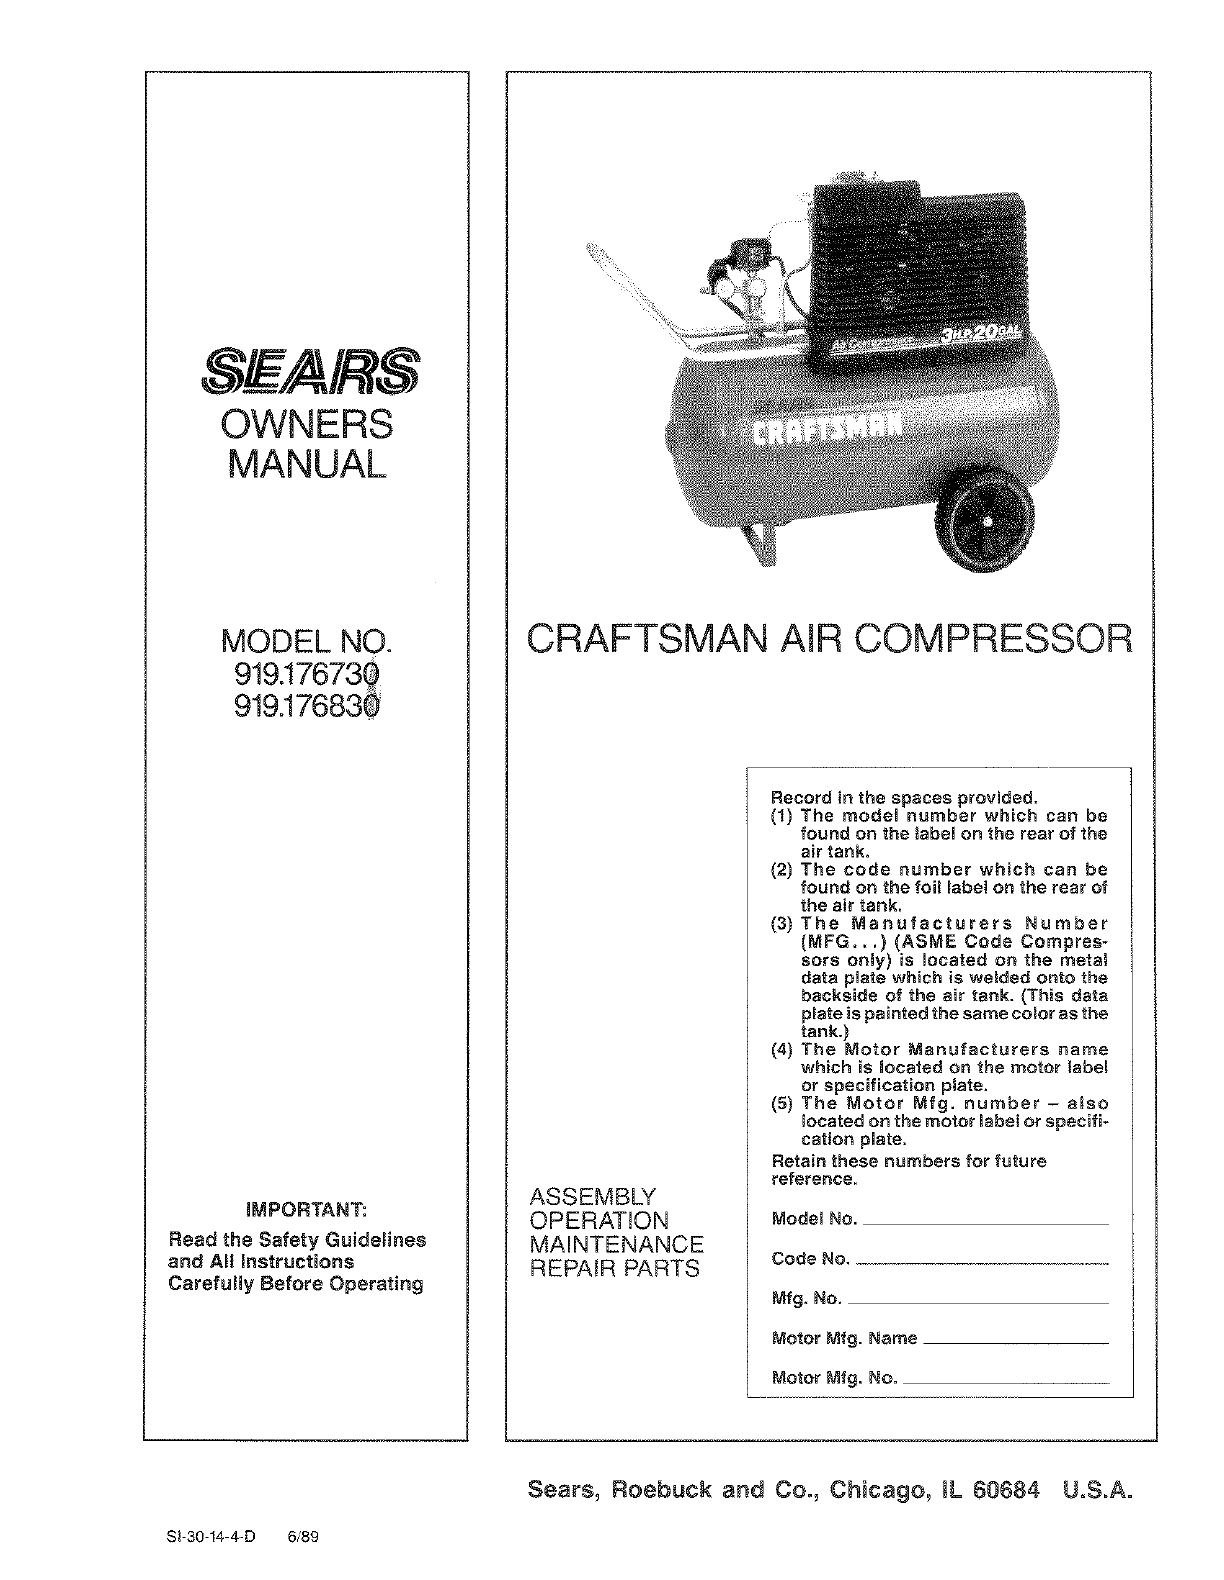 539623fc 6afd 459d a112 77bb4e7aa7db bg1 craftsman air compressor 919 176830 user guide manualsonline com wiring diagram for craftsman air compressor at edmiracle.co